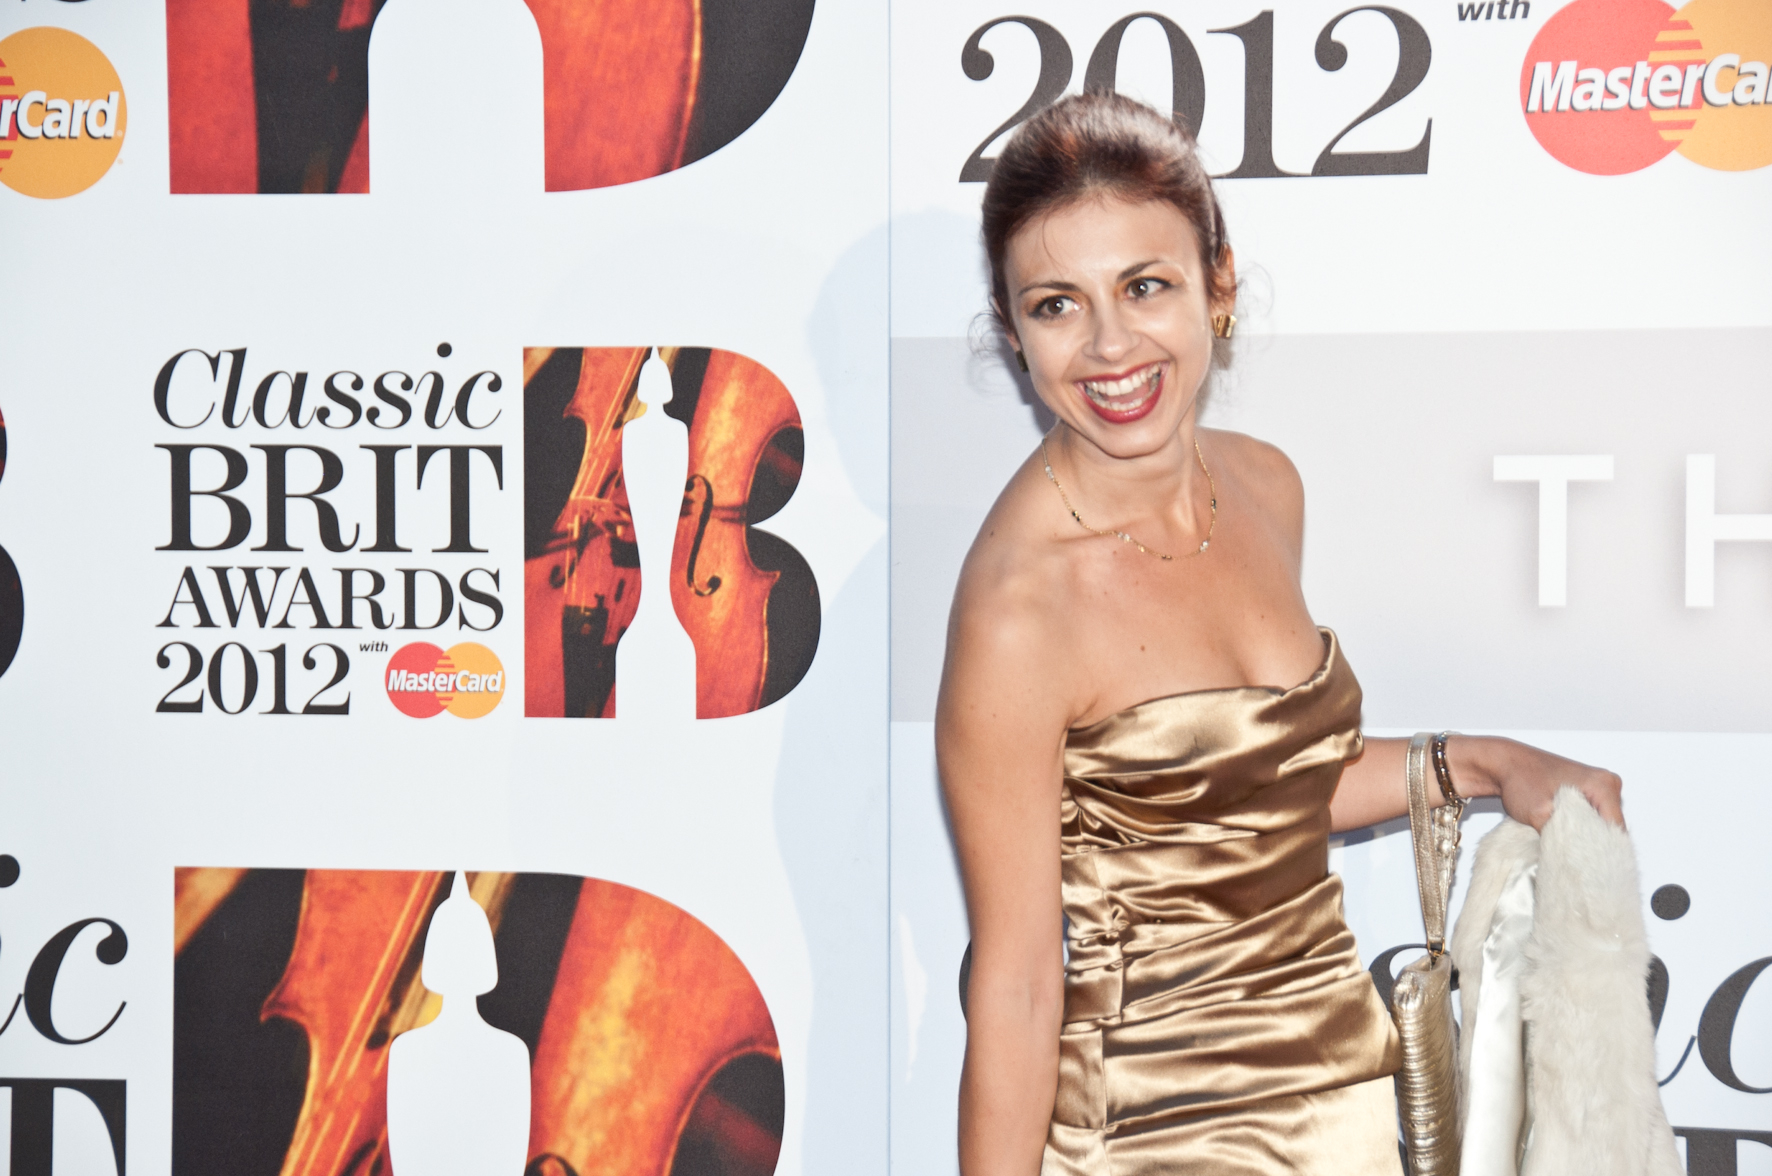 S.Passamonte at the Classic BRIT Awards